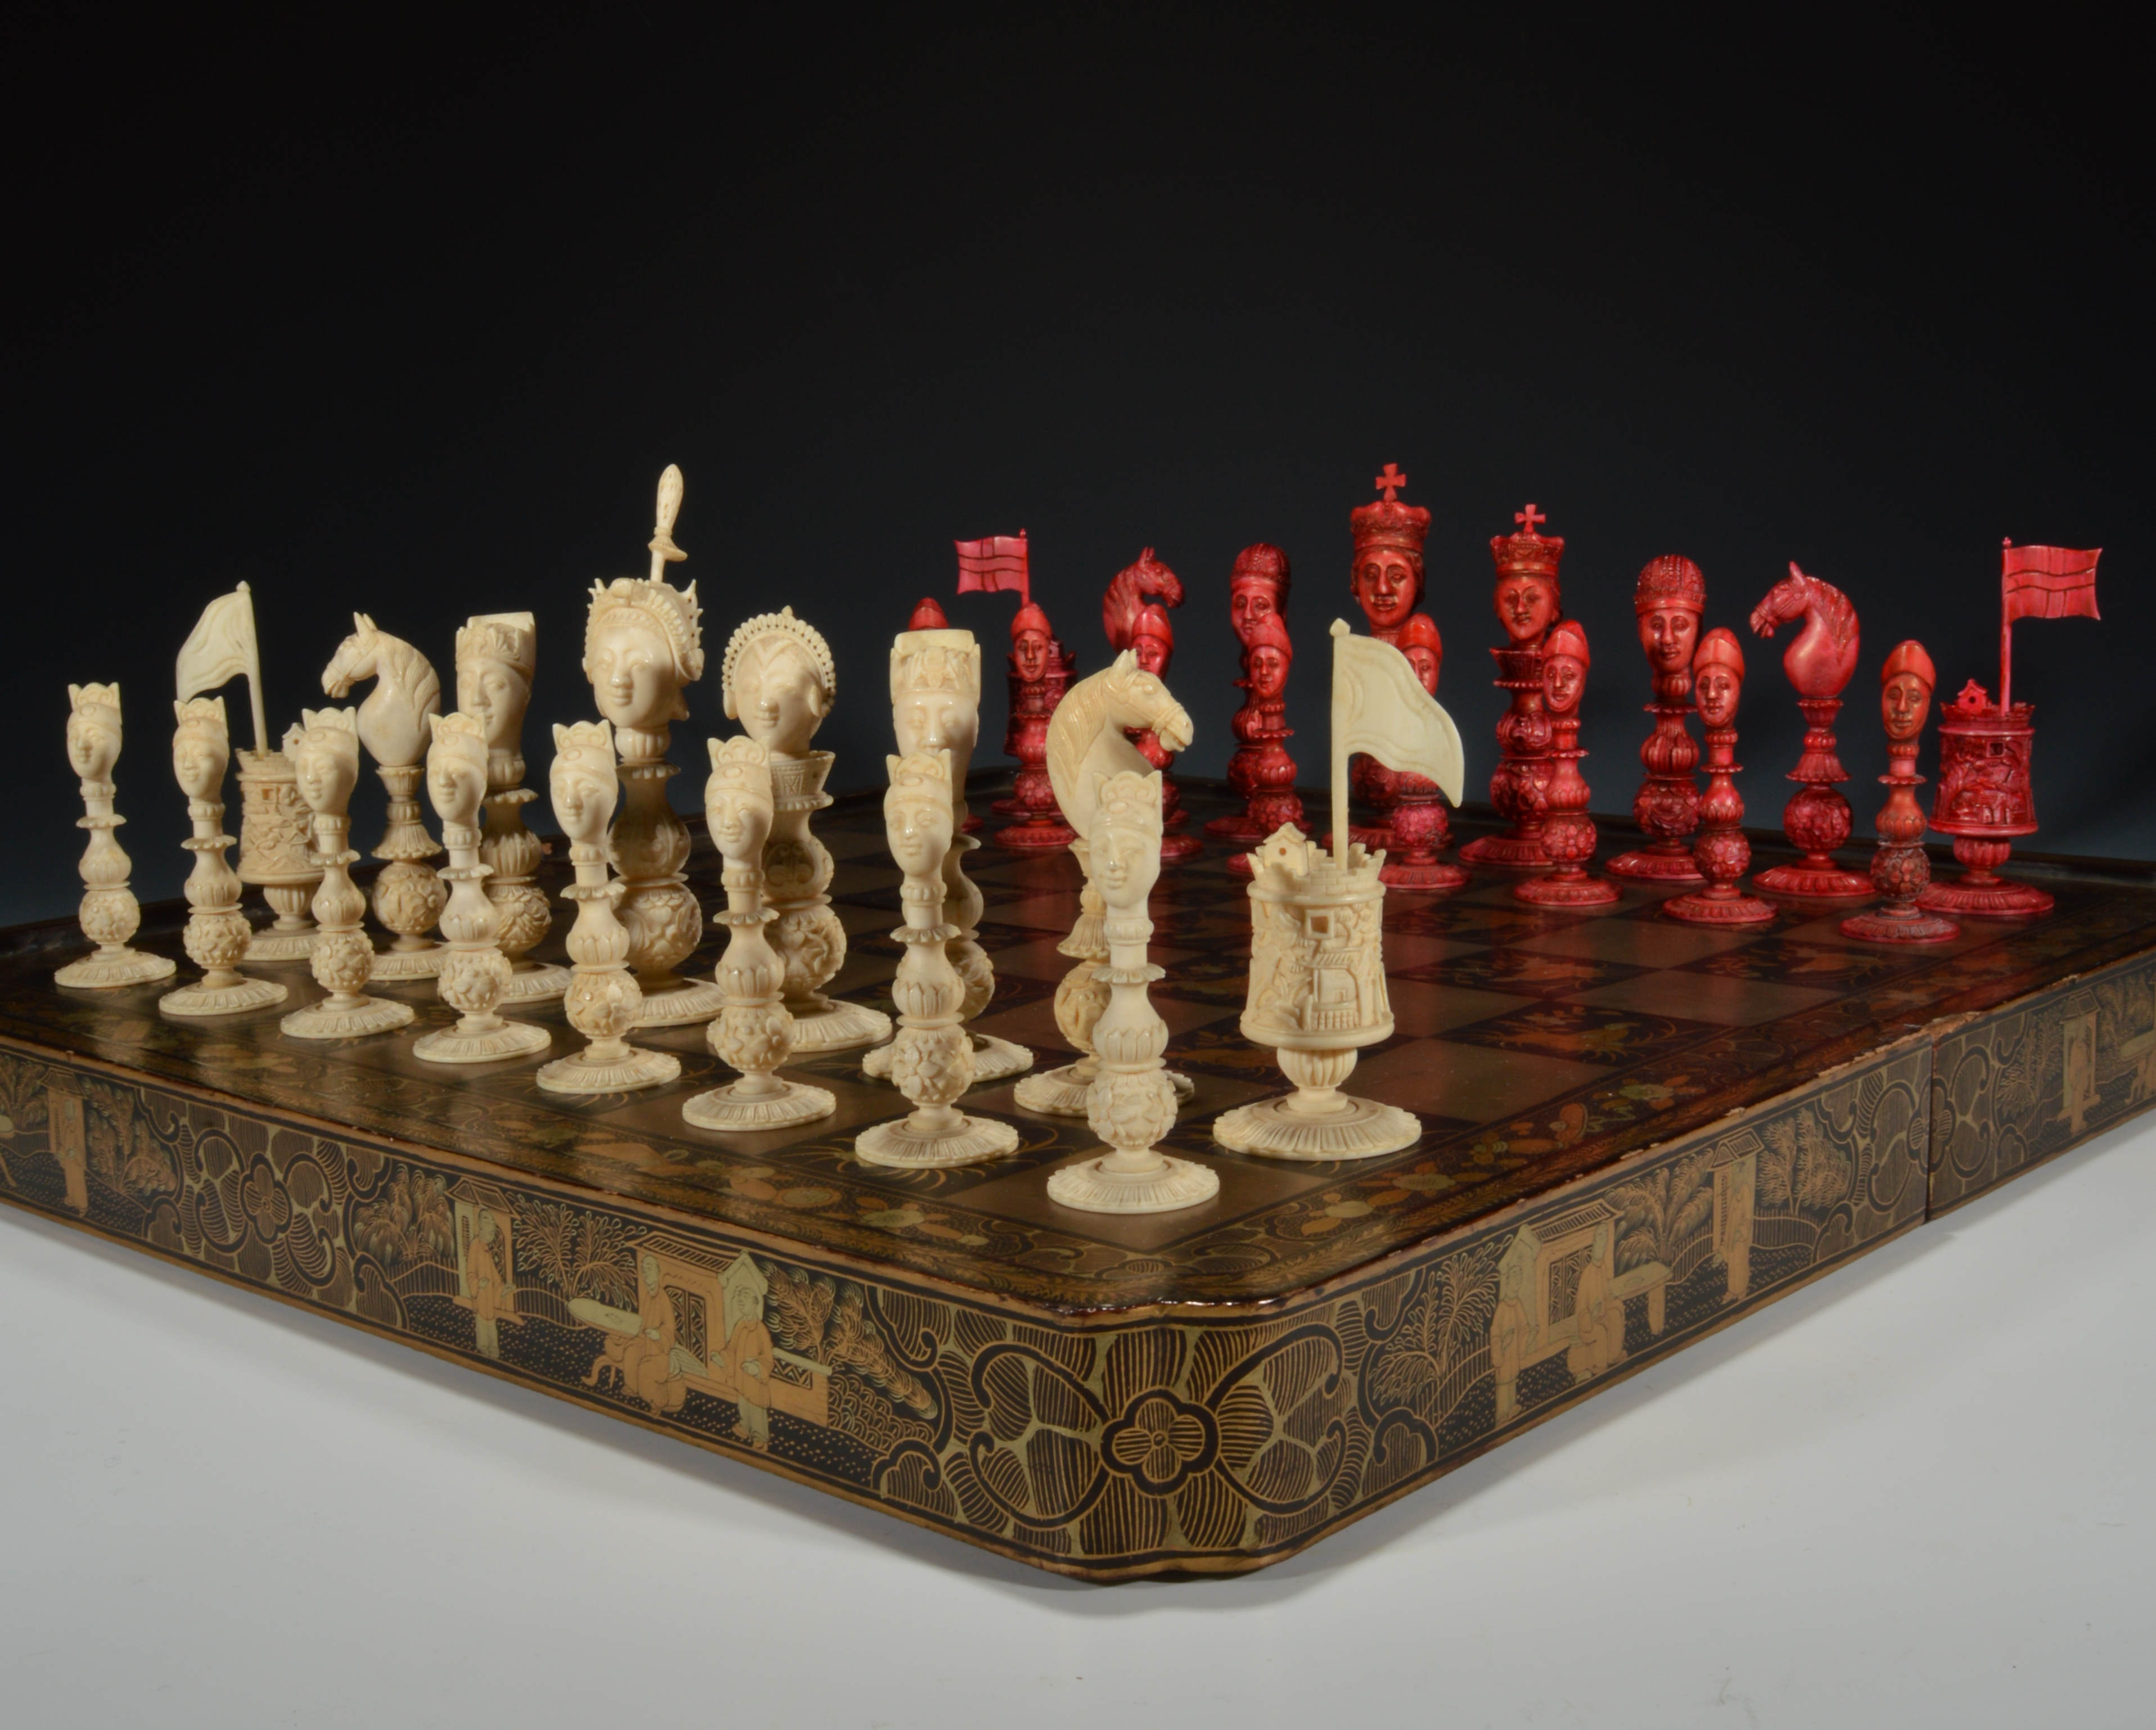 100 unusual chess sets berkeley chess ltd large camelot chess set ivory and red 0 welcome - Collectible chess sets ...